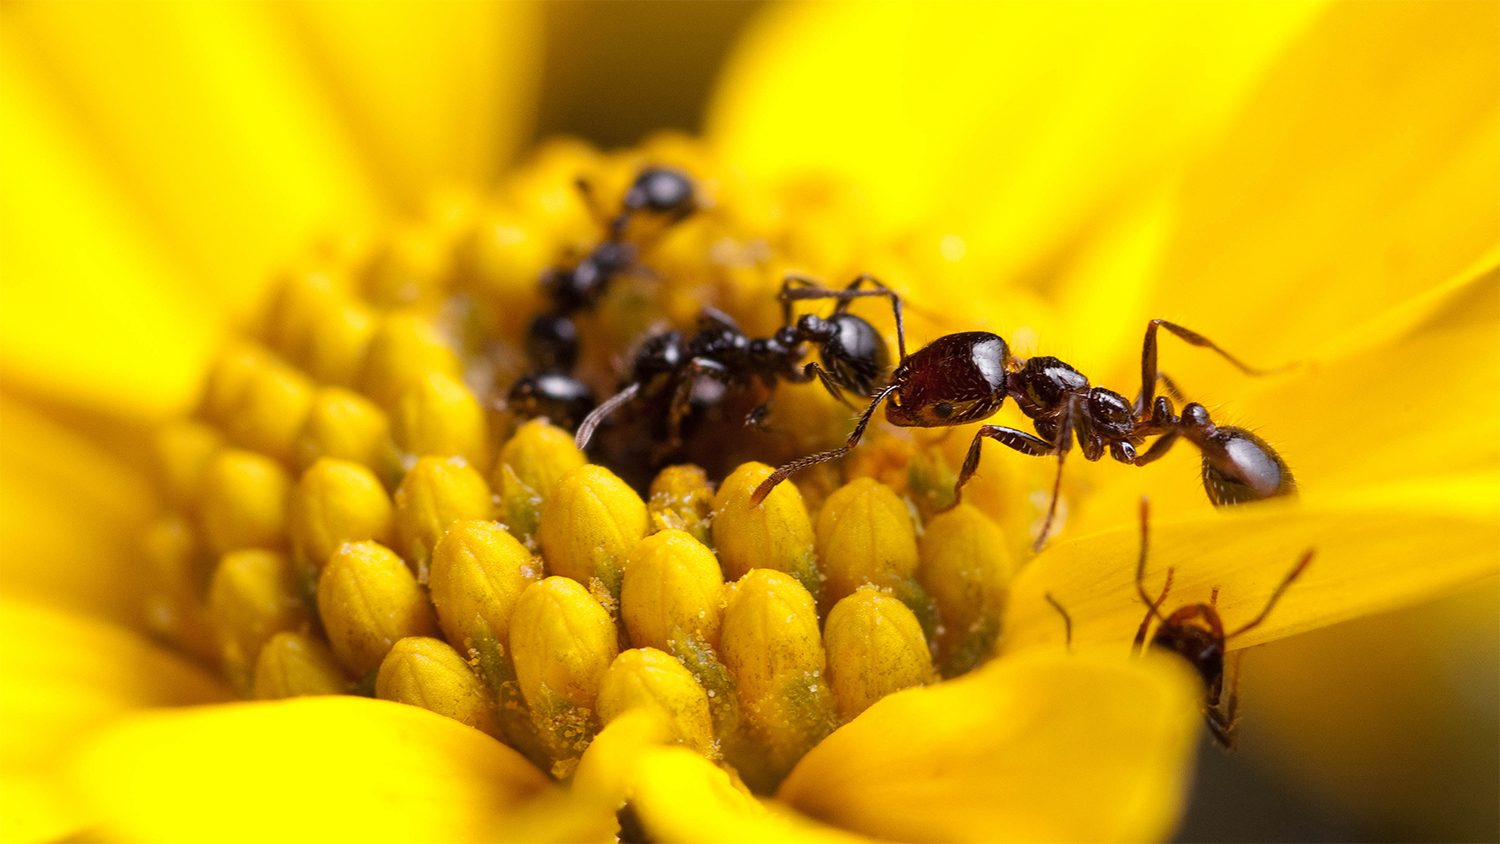 Photo of ants climbing on a yellow flower.